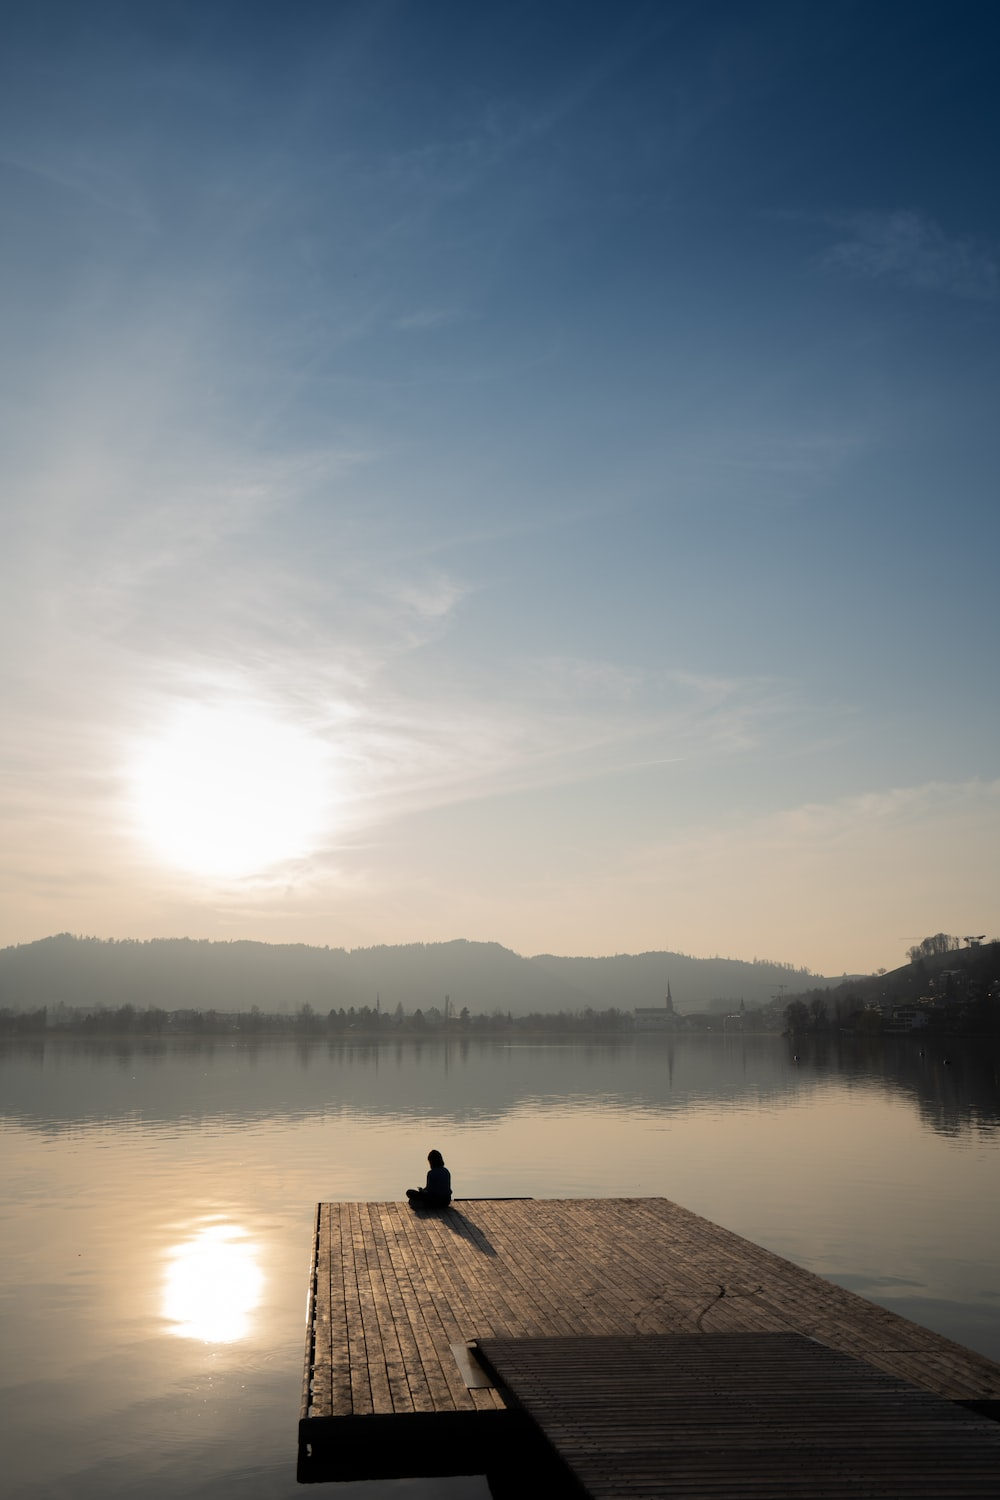 person sitting on wooden dock